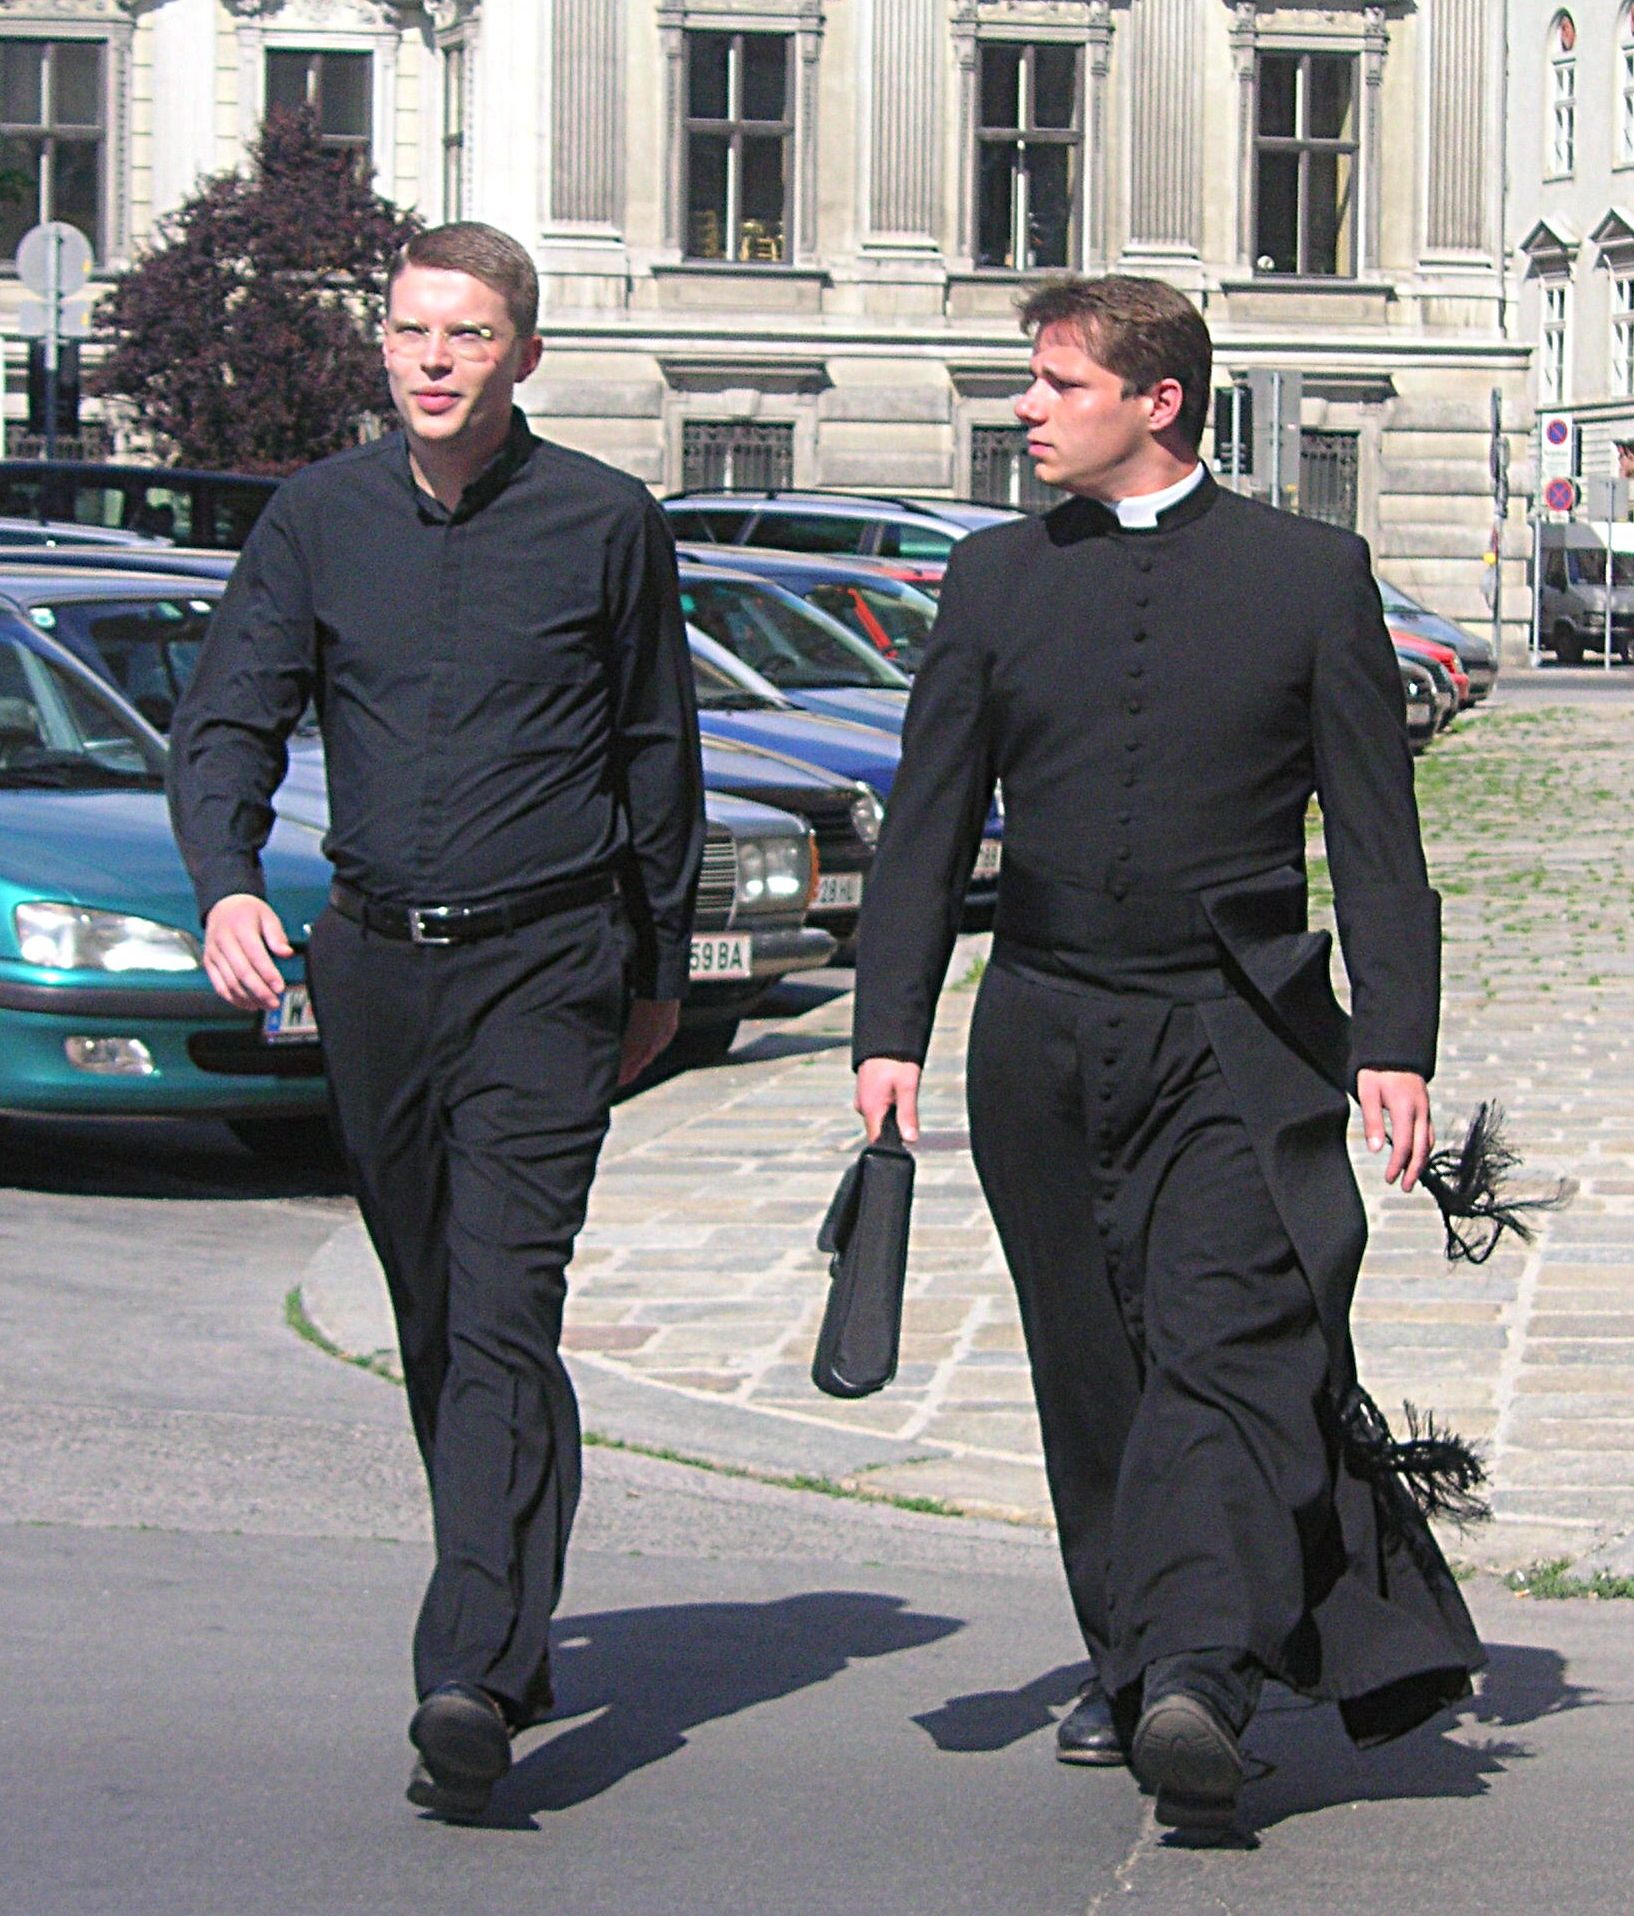 File:Clerical clothing.jpg - Wikipedia, the free encyclopedia